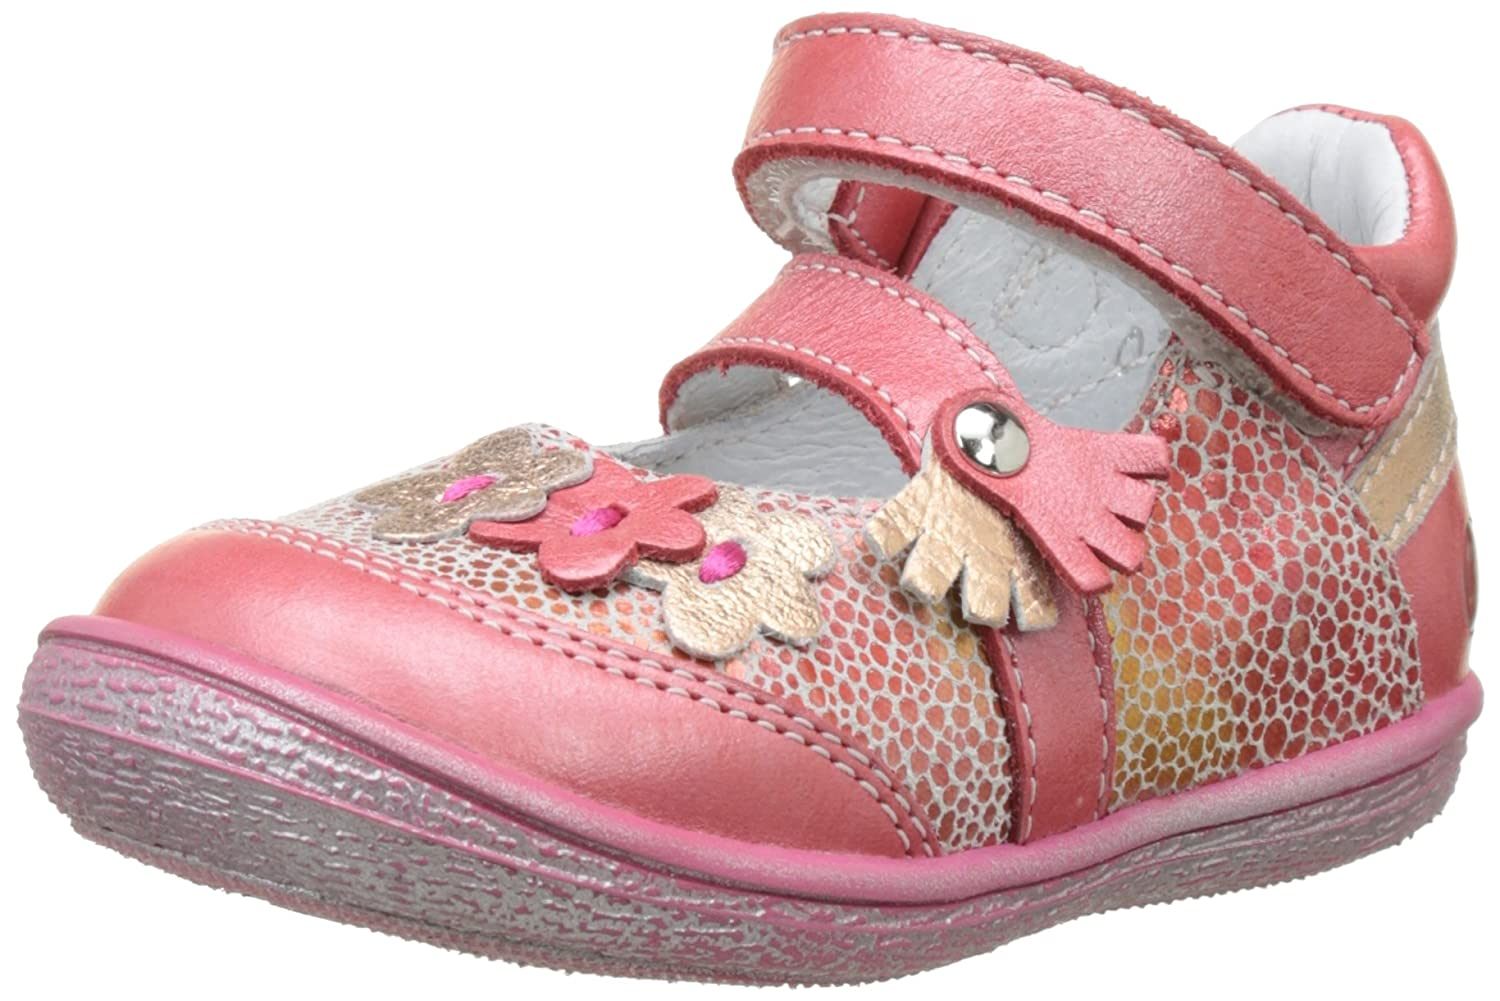 GBB Baby Girls' Pia Mary Janes Shoes 17E207